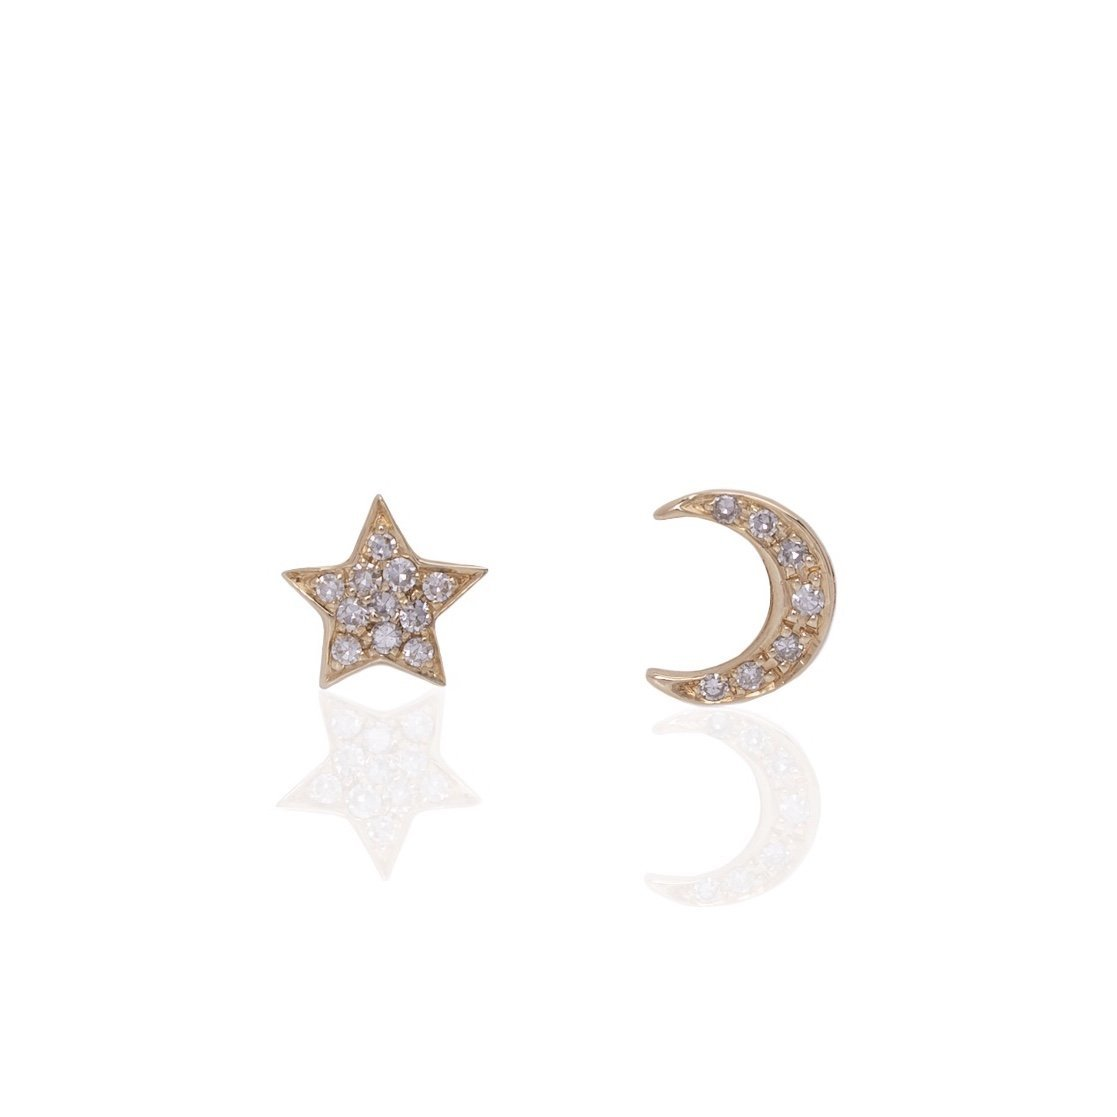 14K Gold Star and Half Moon Studs - Alexis Jae